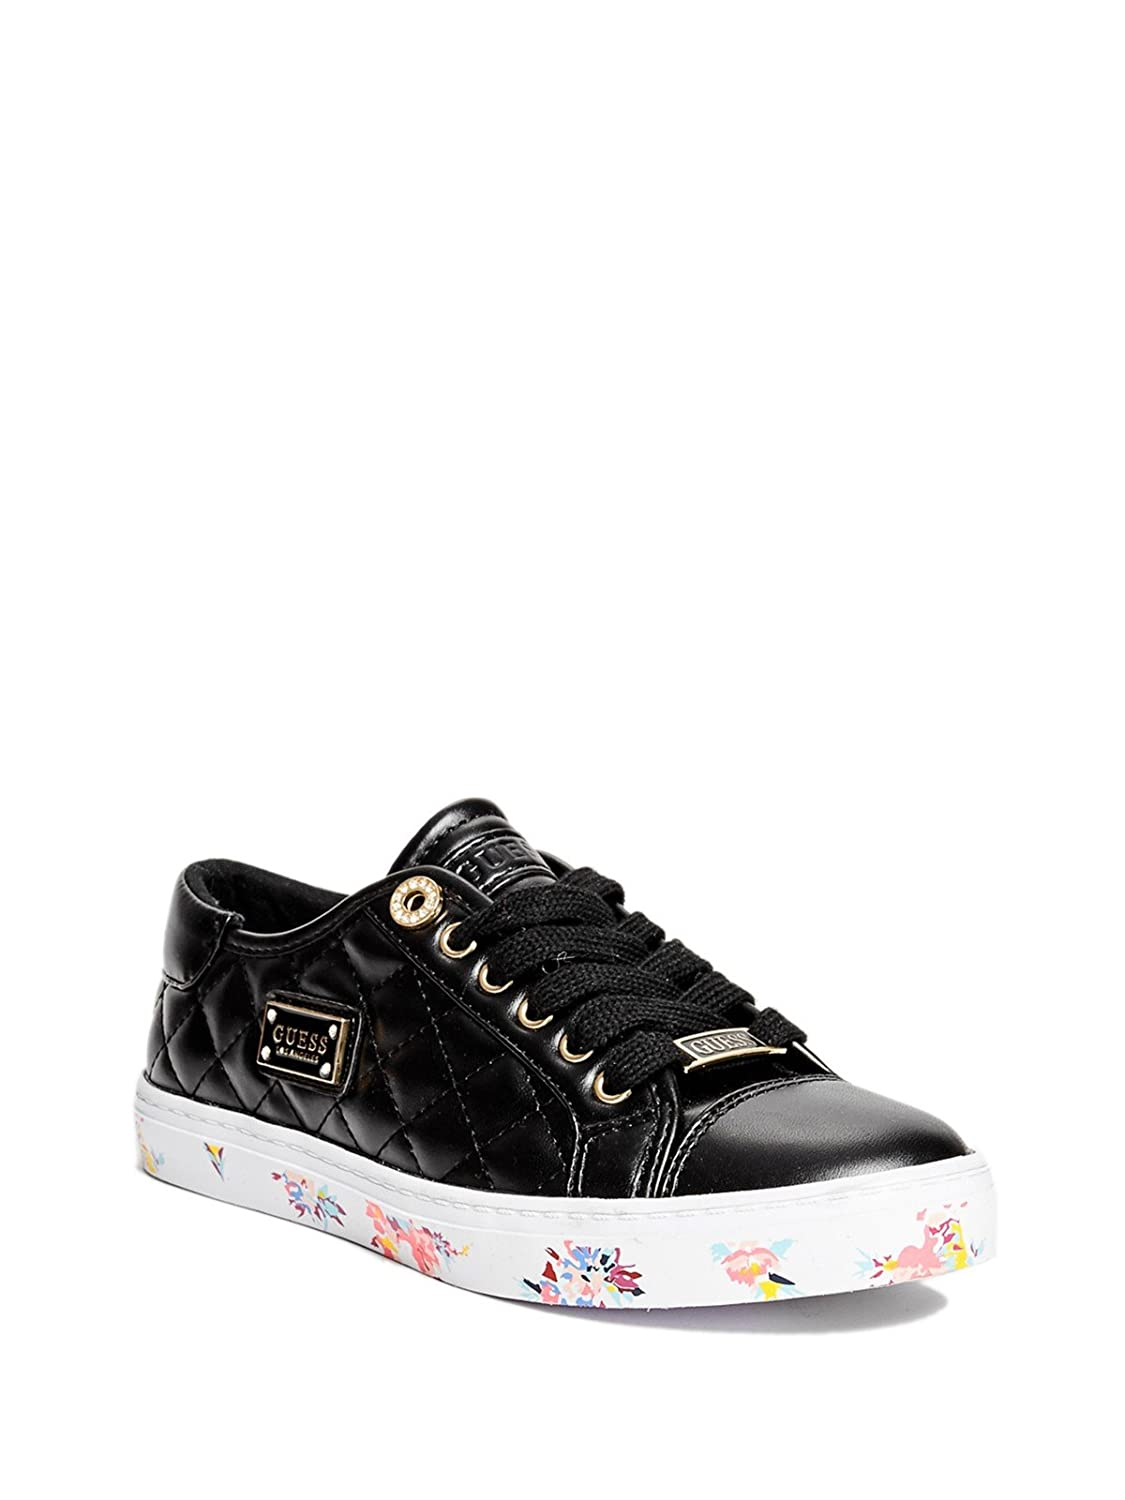 7405d1be84a2 GUESS Factory Women s Greatly Quilted Sneakers Black Size  M US  Amazon.co. uk  Shoes   Bags